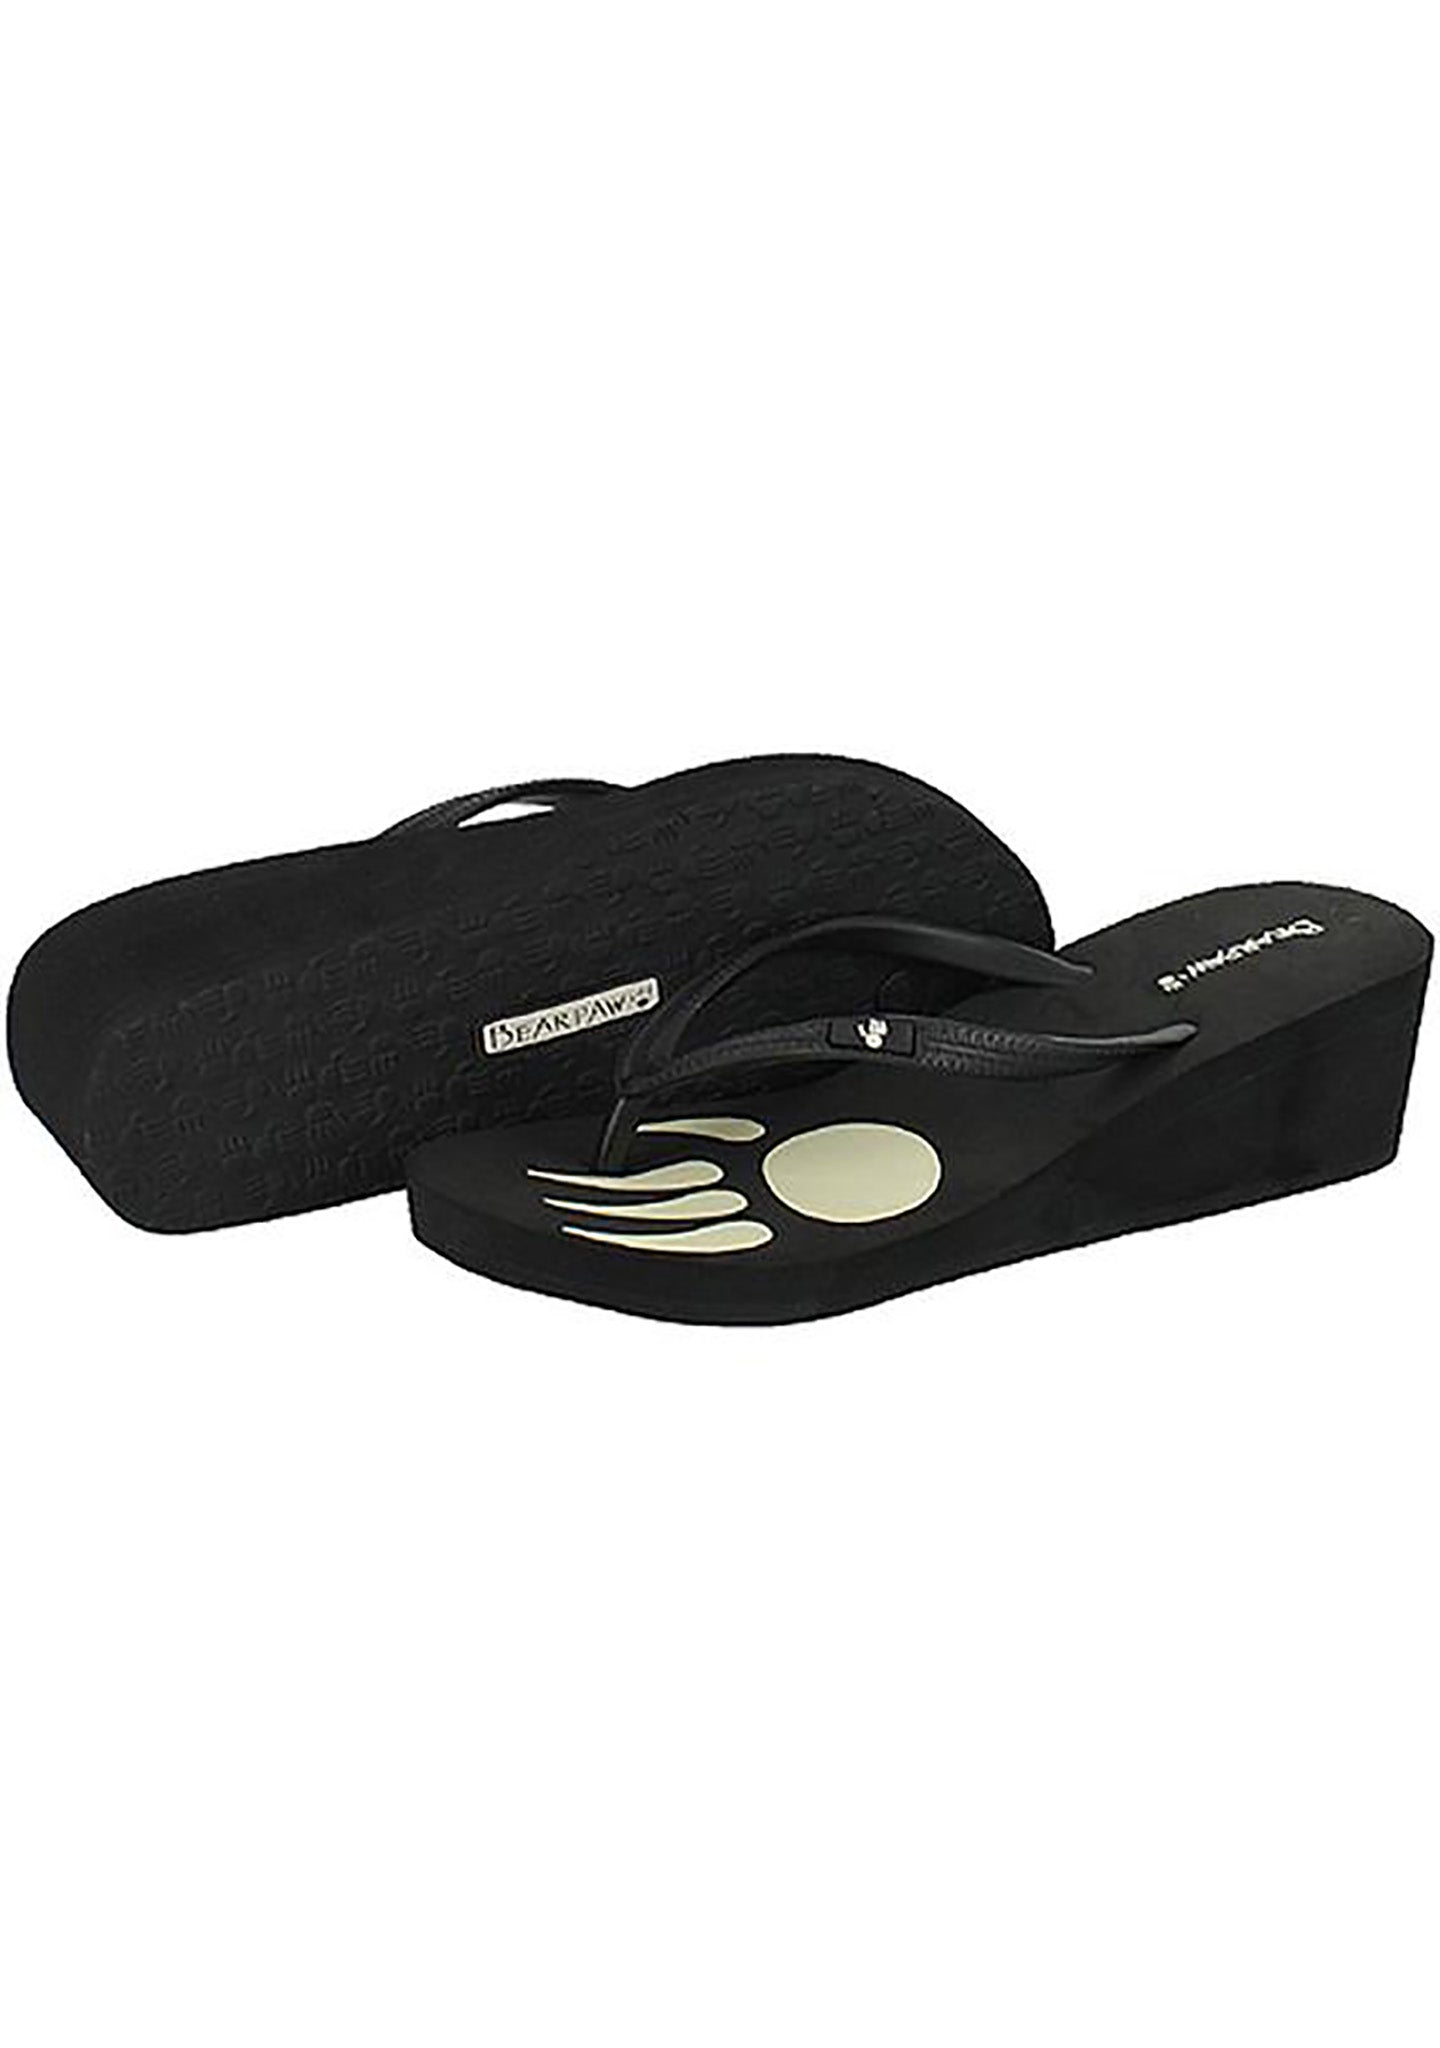 Bearpaw Lilly Wedge Soft Rubber Flip Flop Sandal in Black